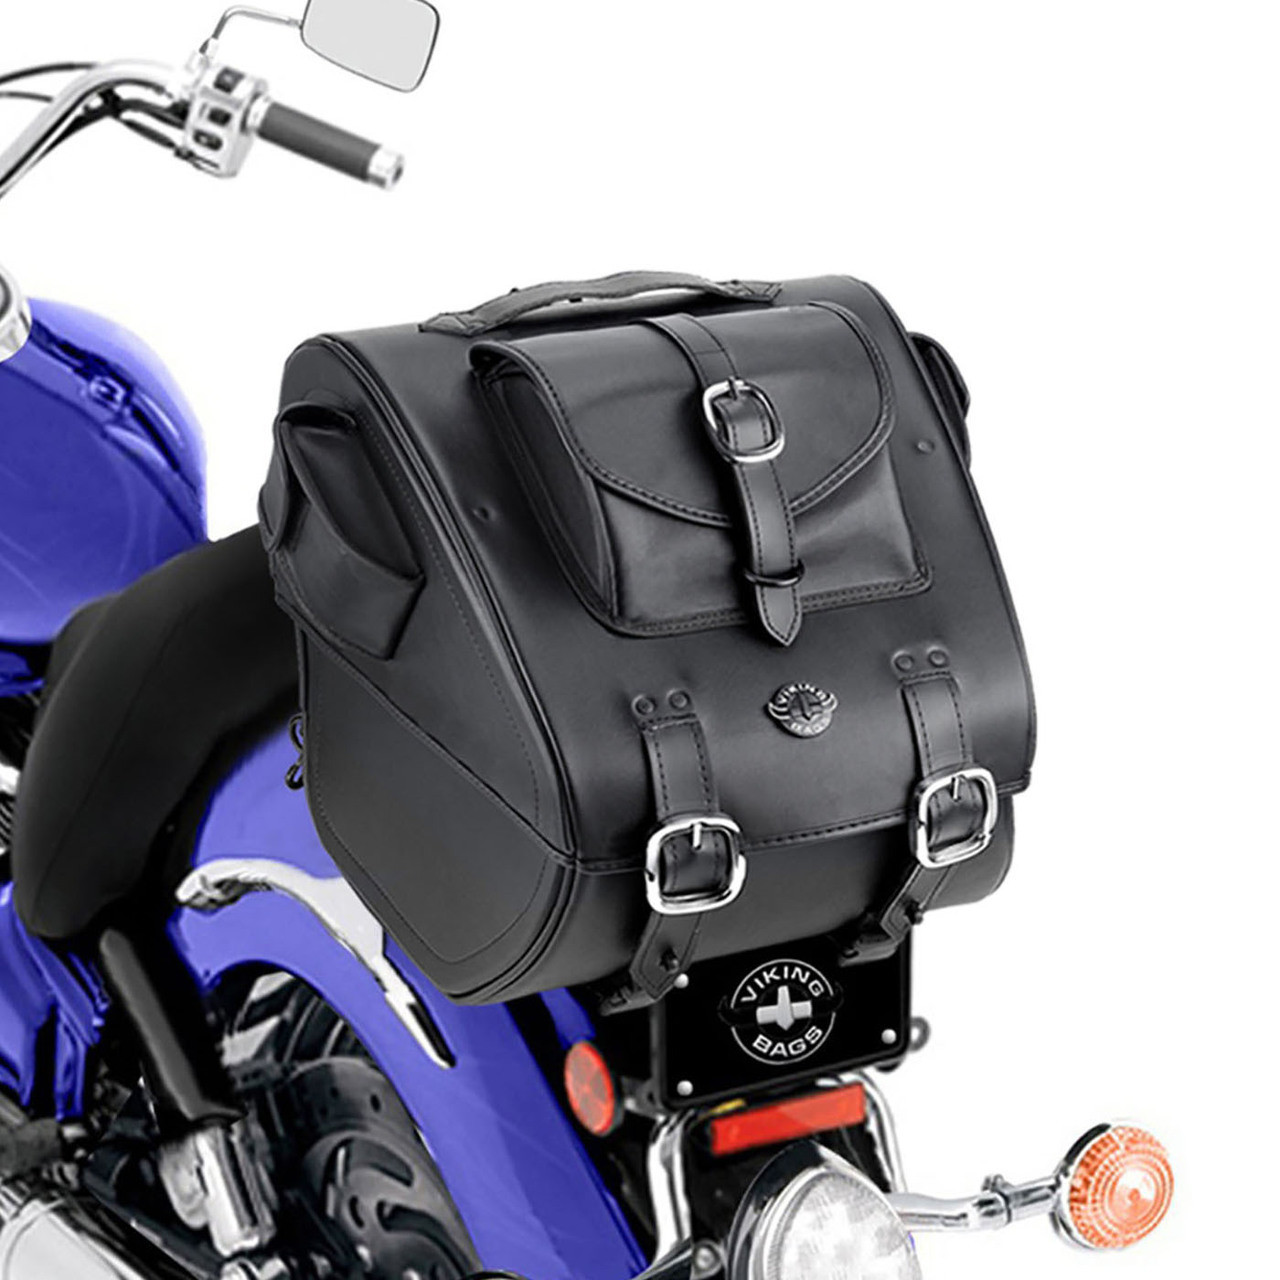 Viking Classic Trunk 3038 Cubic Inches Motorcycle Trunk Back View on Bike